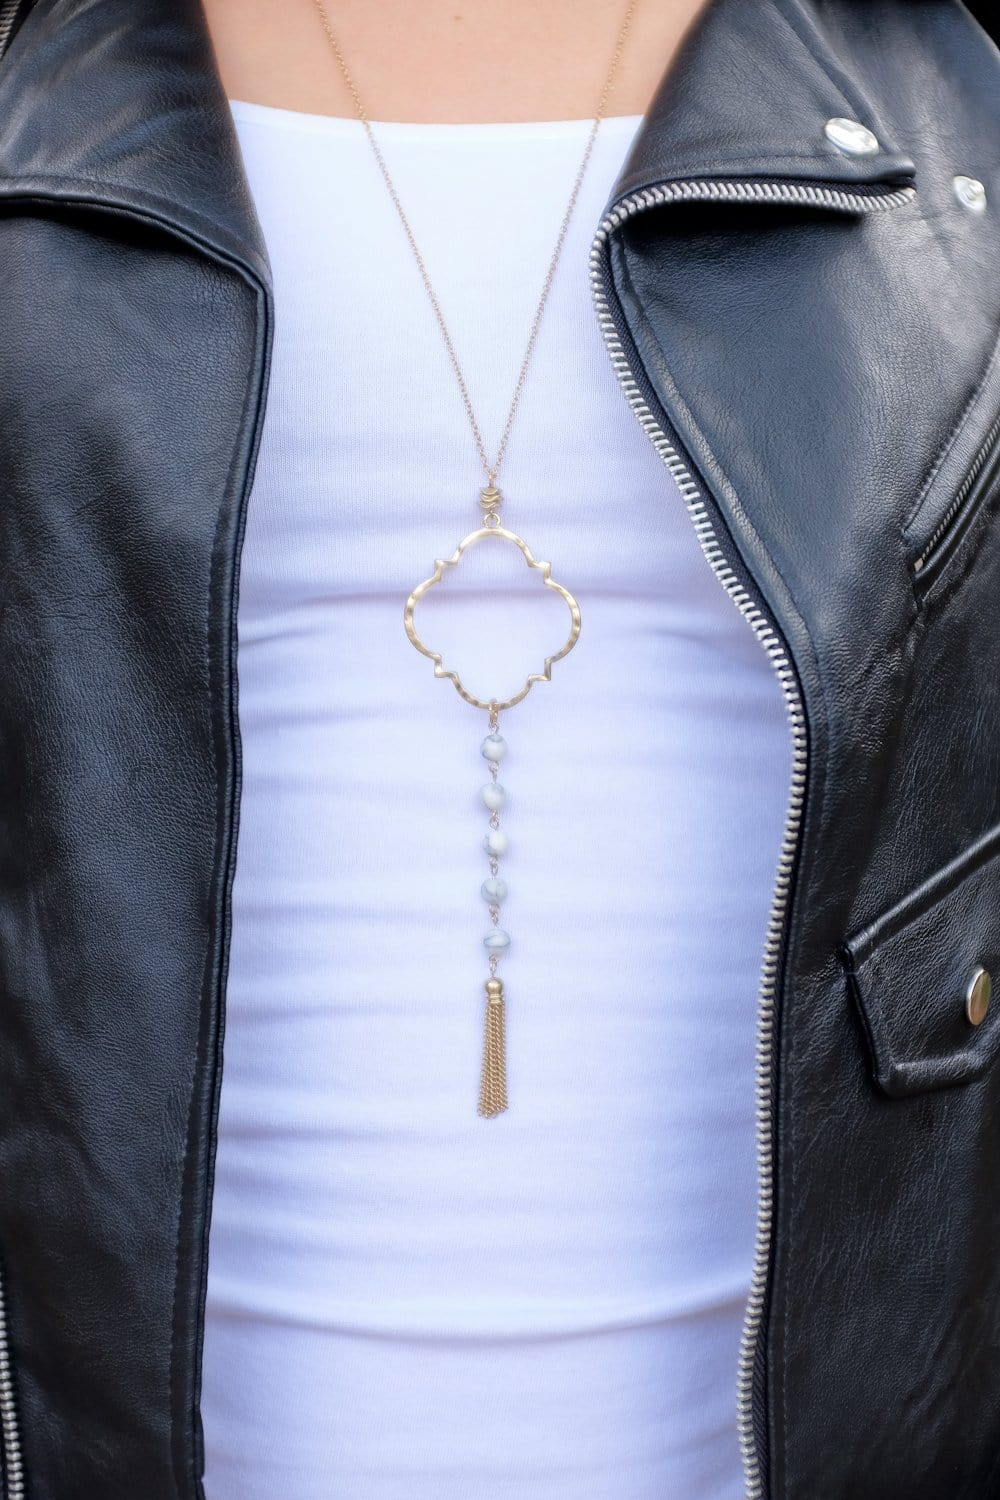 LITTLEST THING TASSEL NECKLACE-GOLD/WHITE MARBLE - Infinity Raine